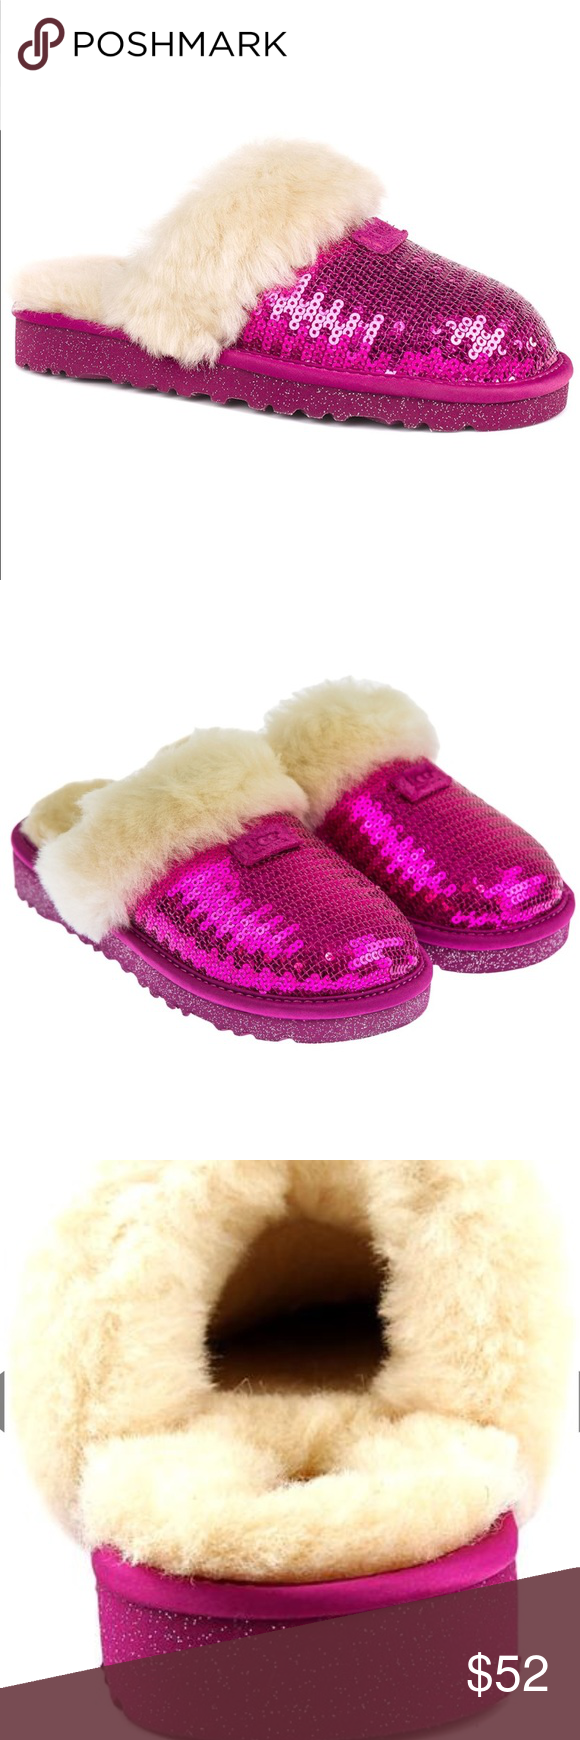 5e640c41dc3 🦄UGG Fuchsia Sequin Dazzle Slippers Add some sparkle to your life ...